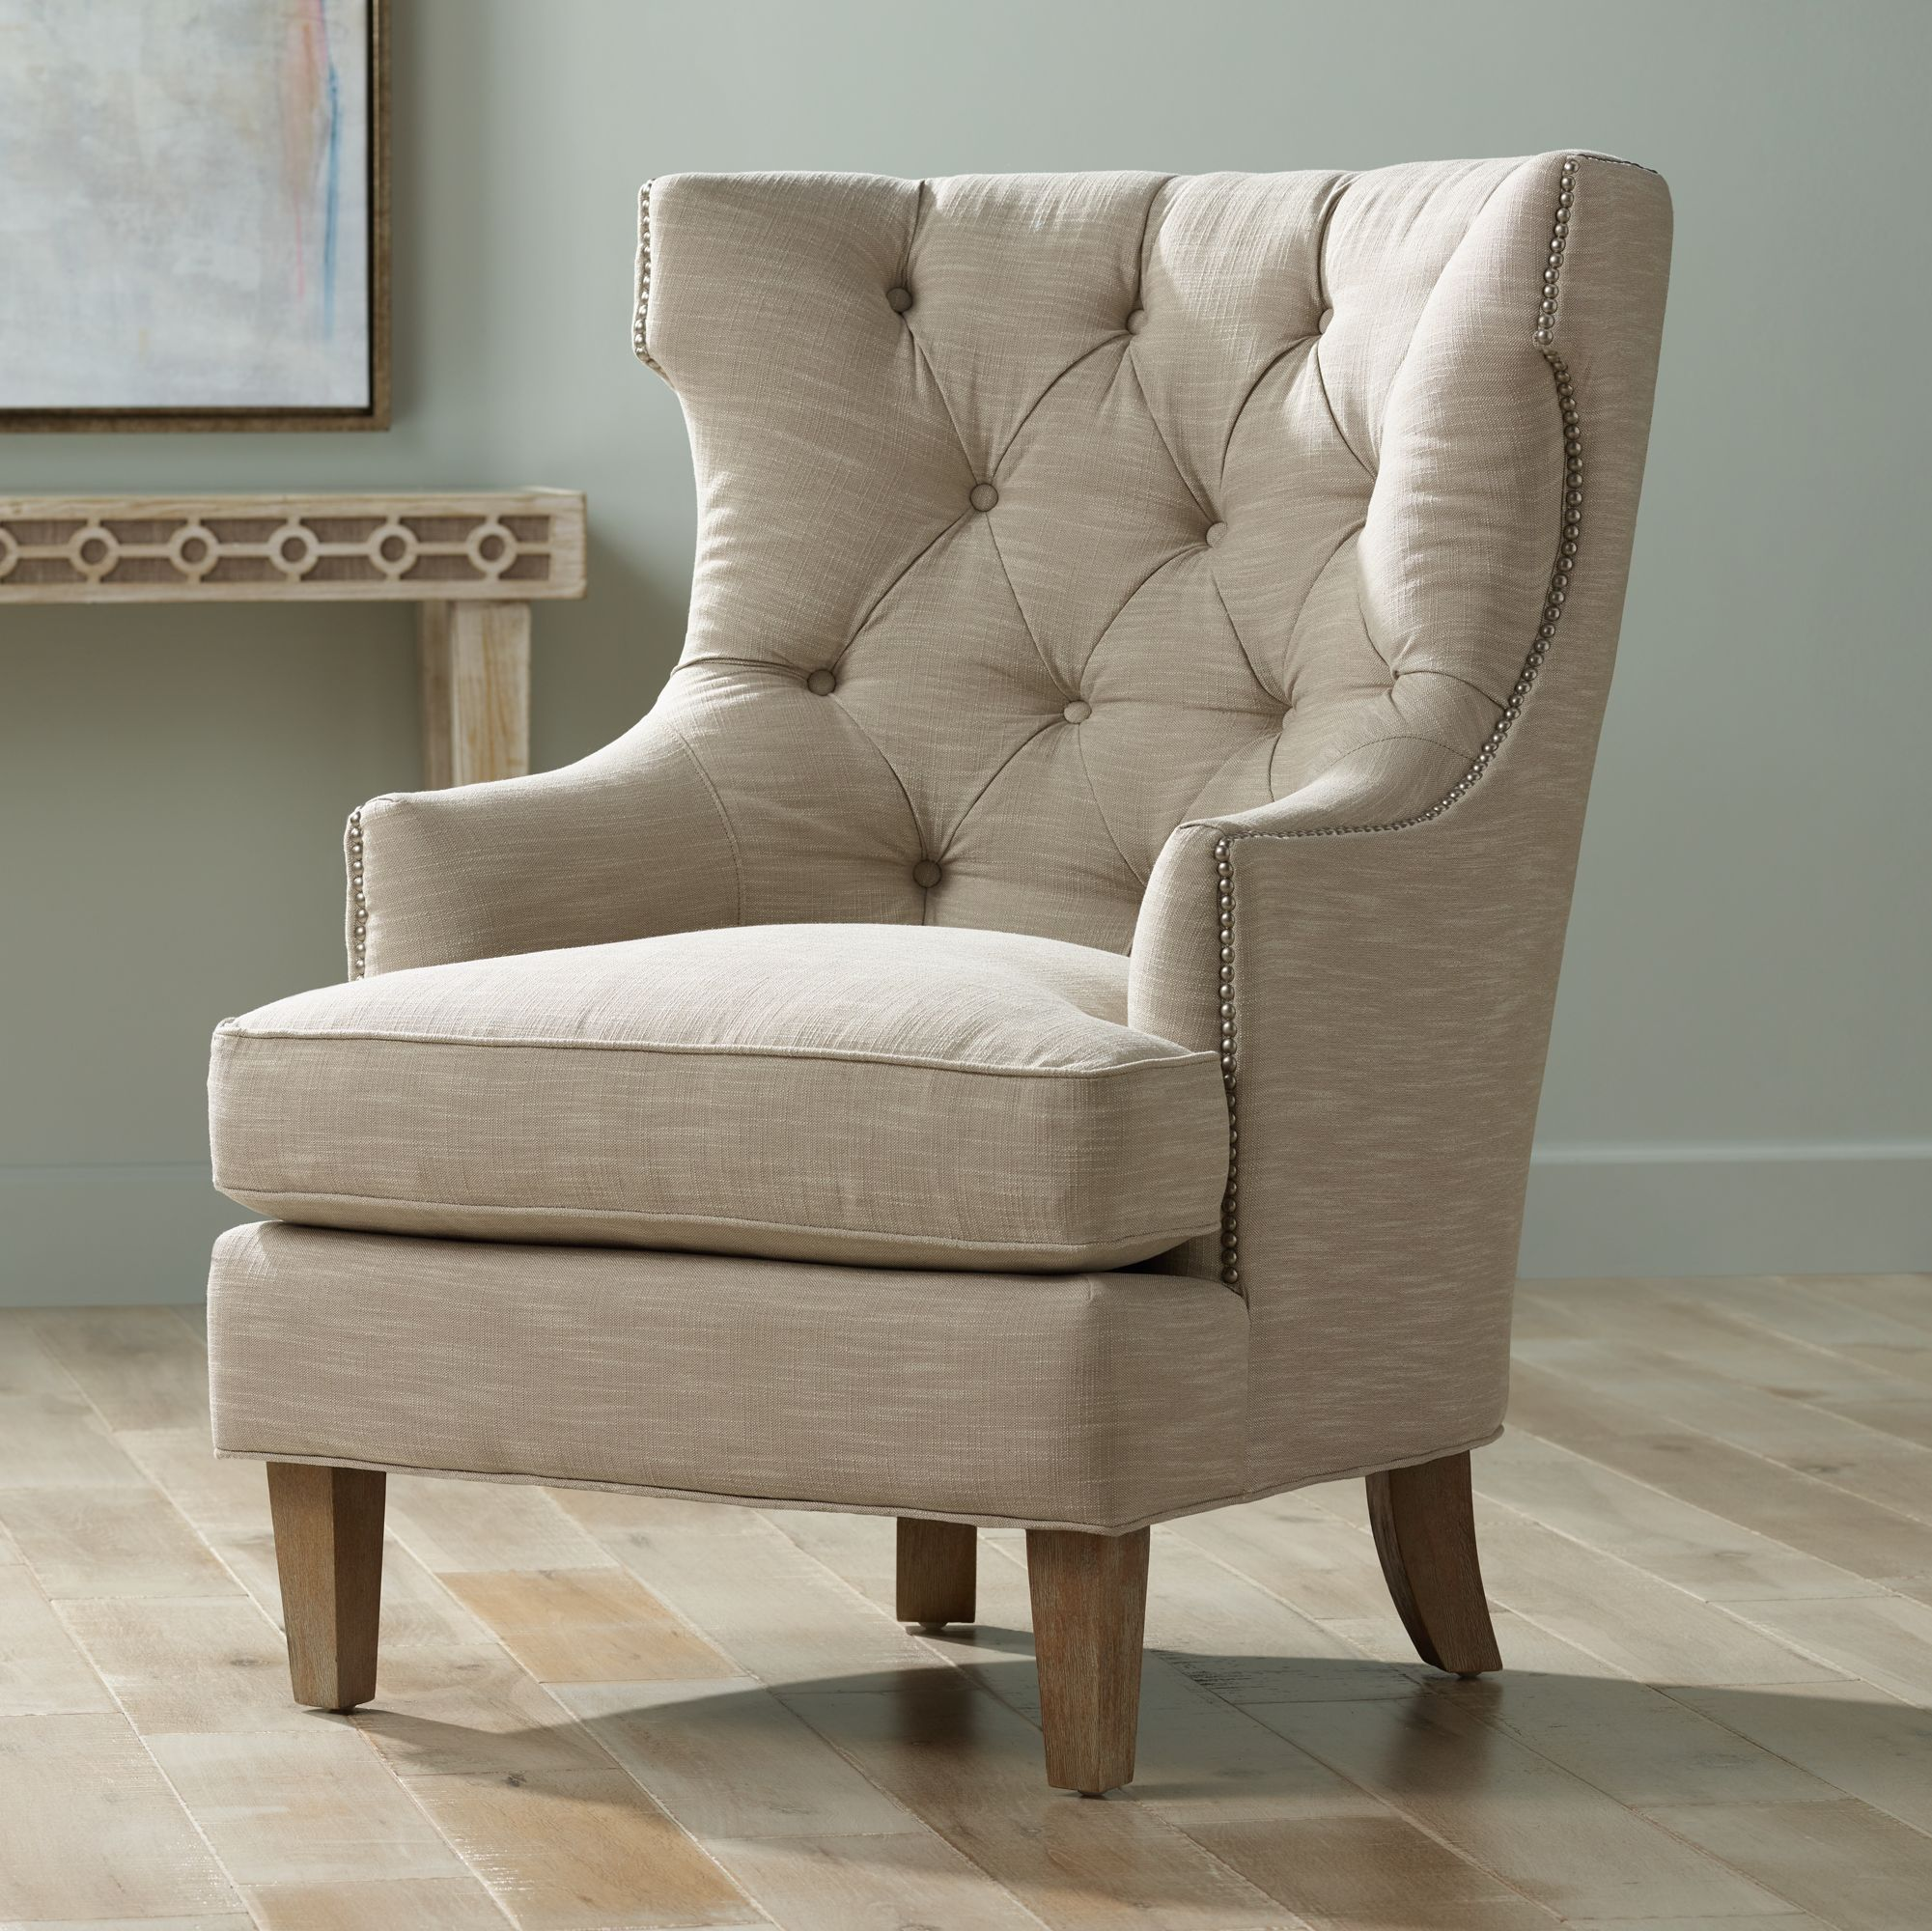 Reese Studio Oatmeal High Back Accent Chair